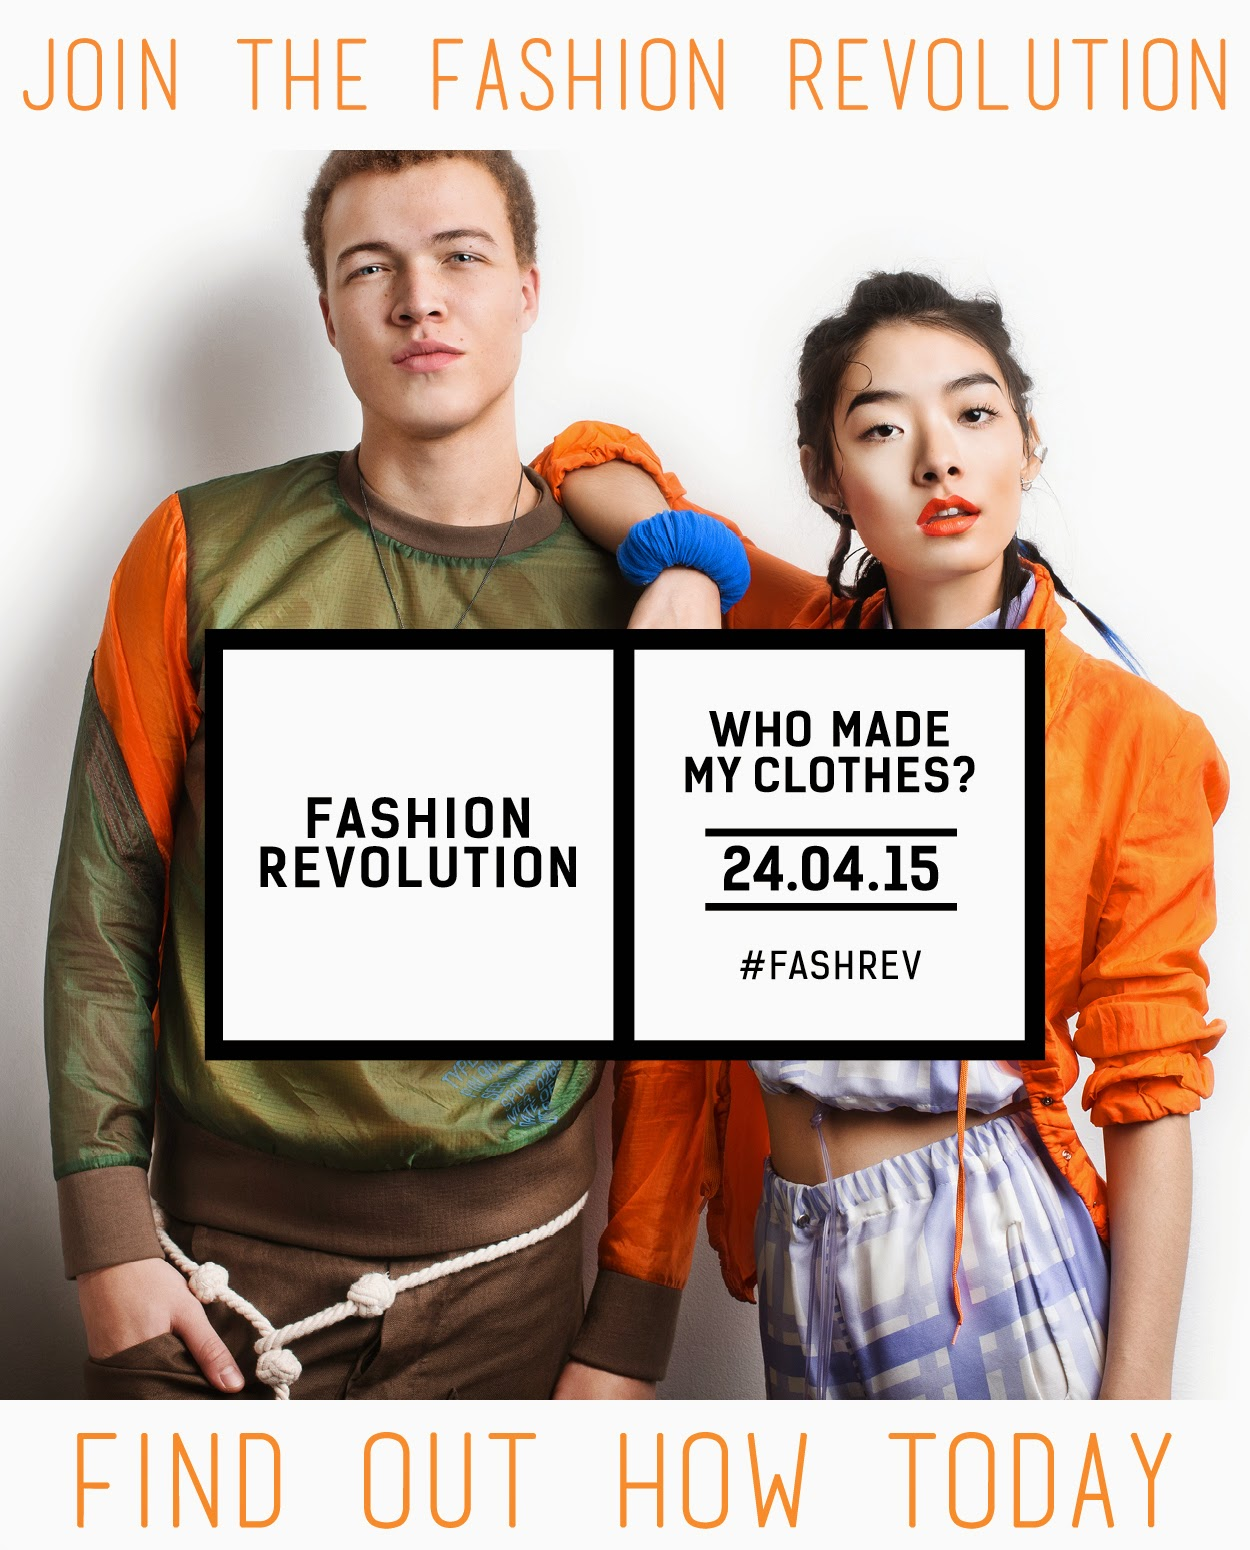 fashion revolution, who made my clothes, whomademyclothes, ethical fashion, ethical fashion blog, bangladesh factory collapse